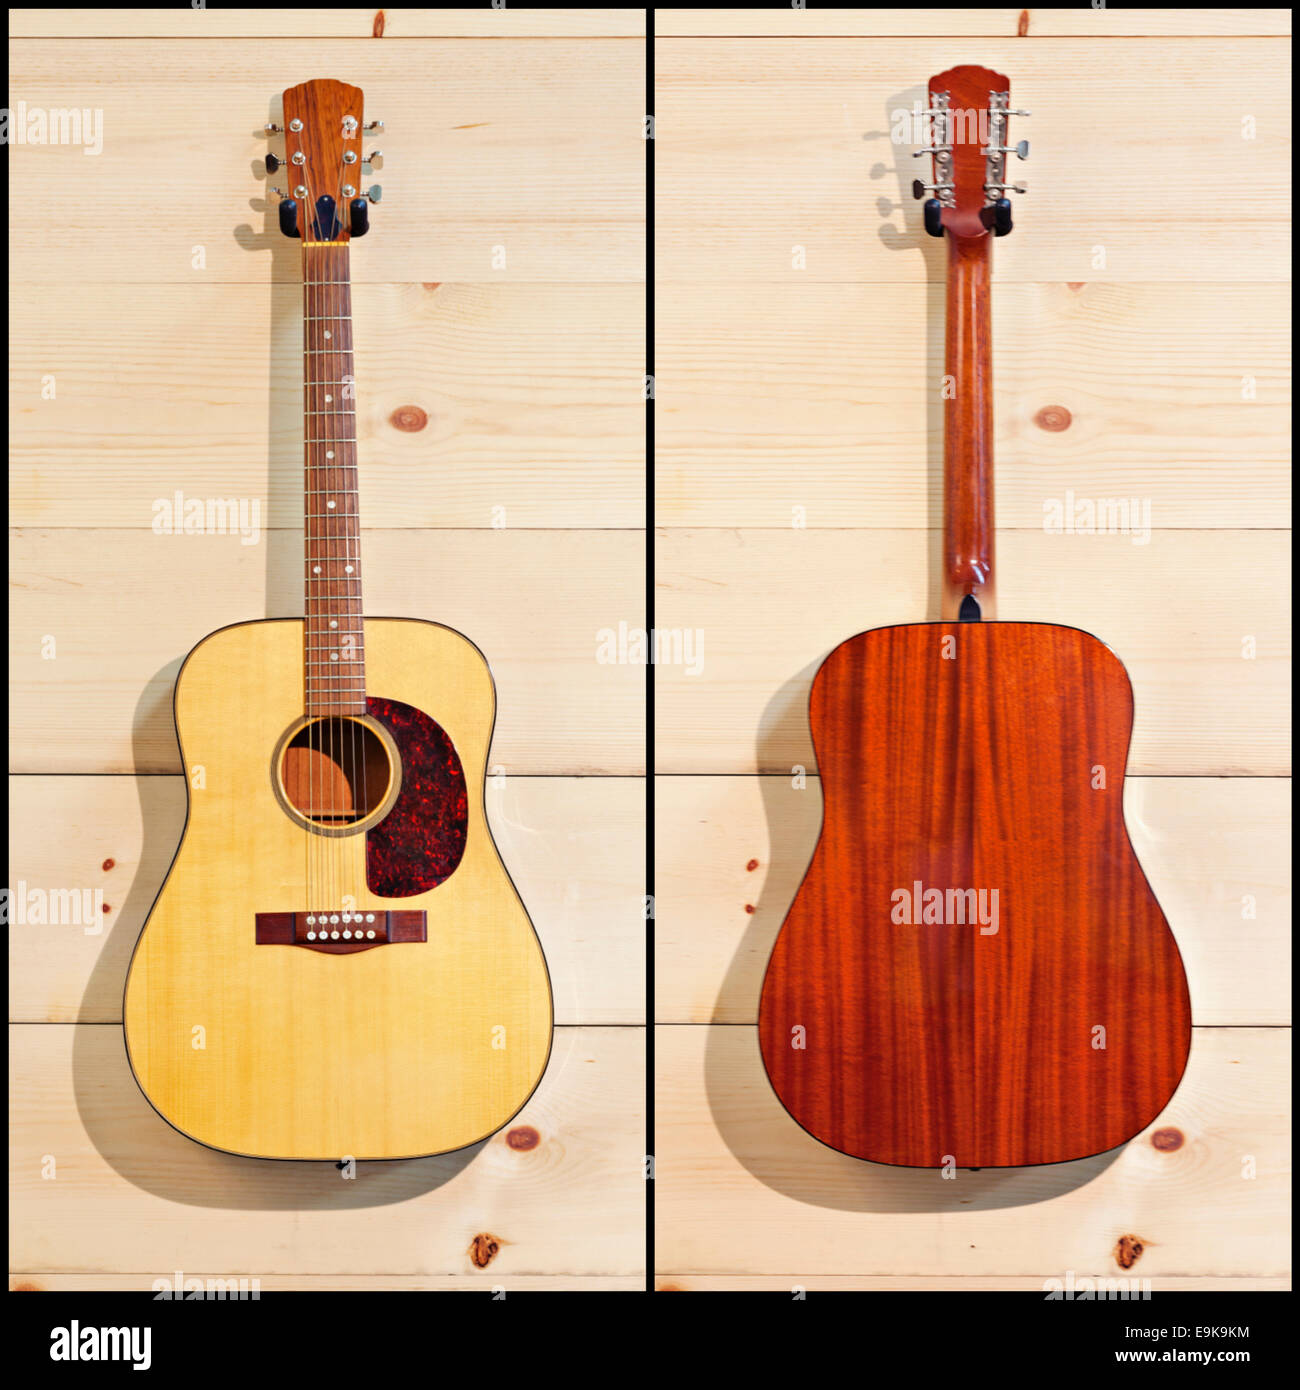 Collage showing two sides of guitar - Stock Image